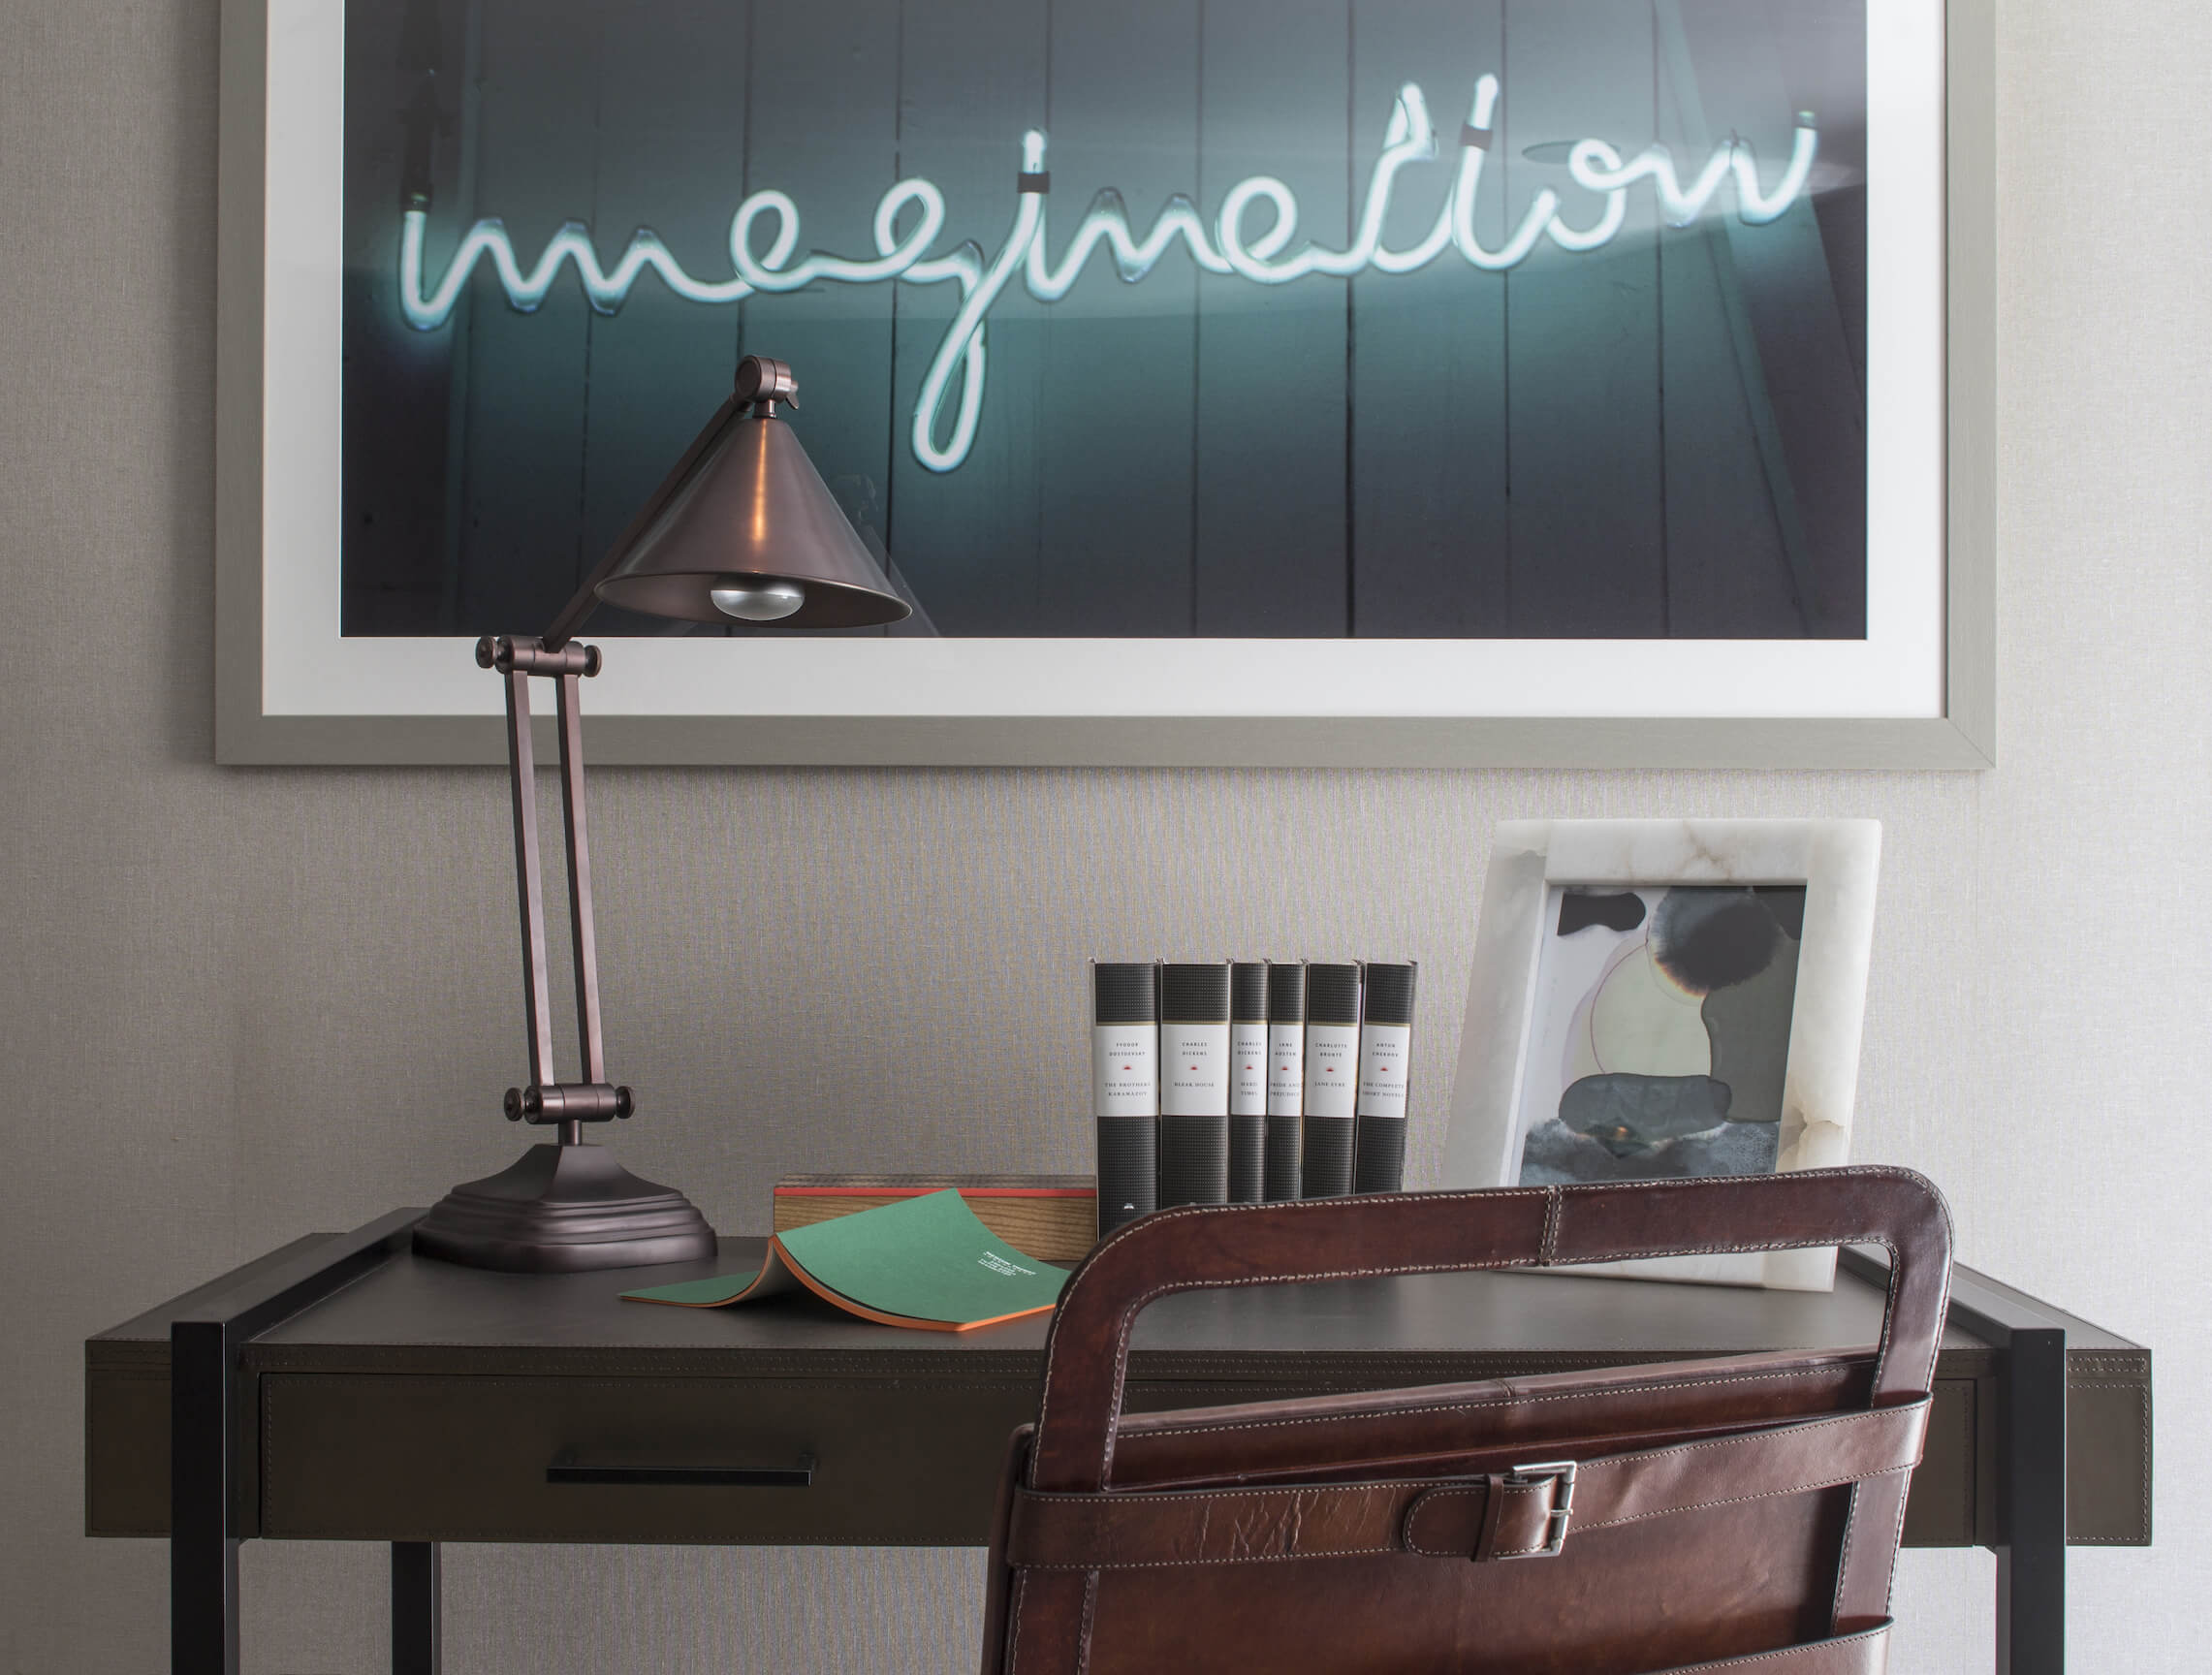 """Above the sleekly minimalist desk hangs a neon """"imagination"""" art piece, adding a splash of glowing color to the space."""